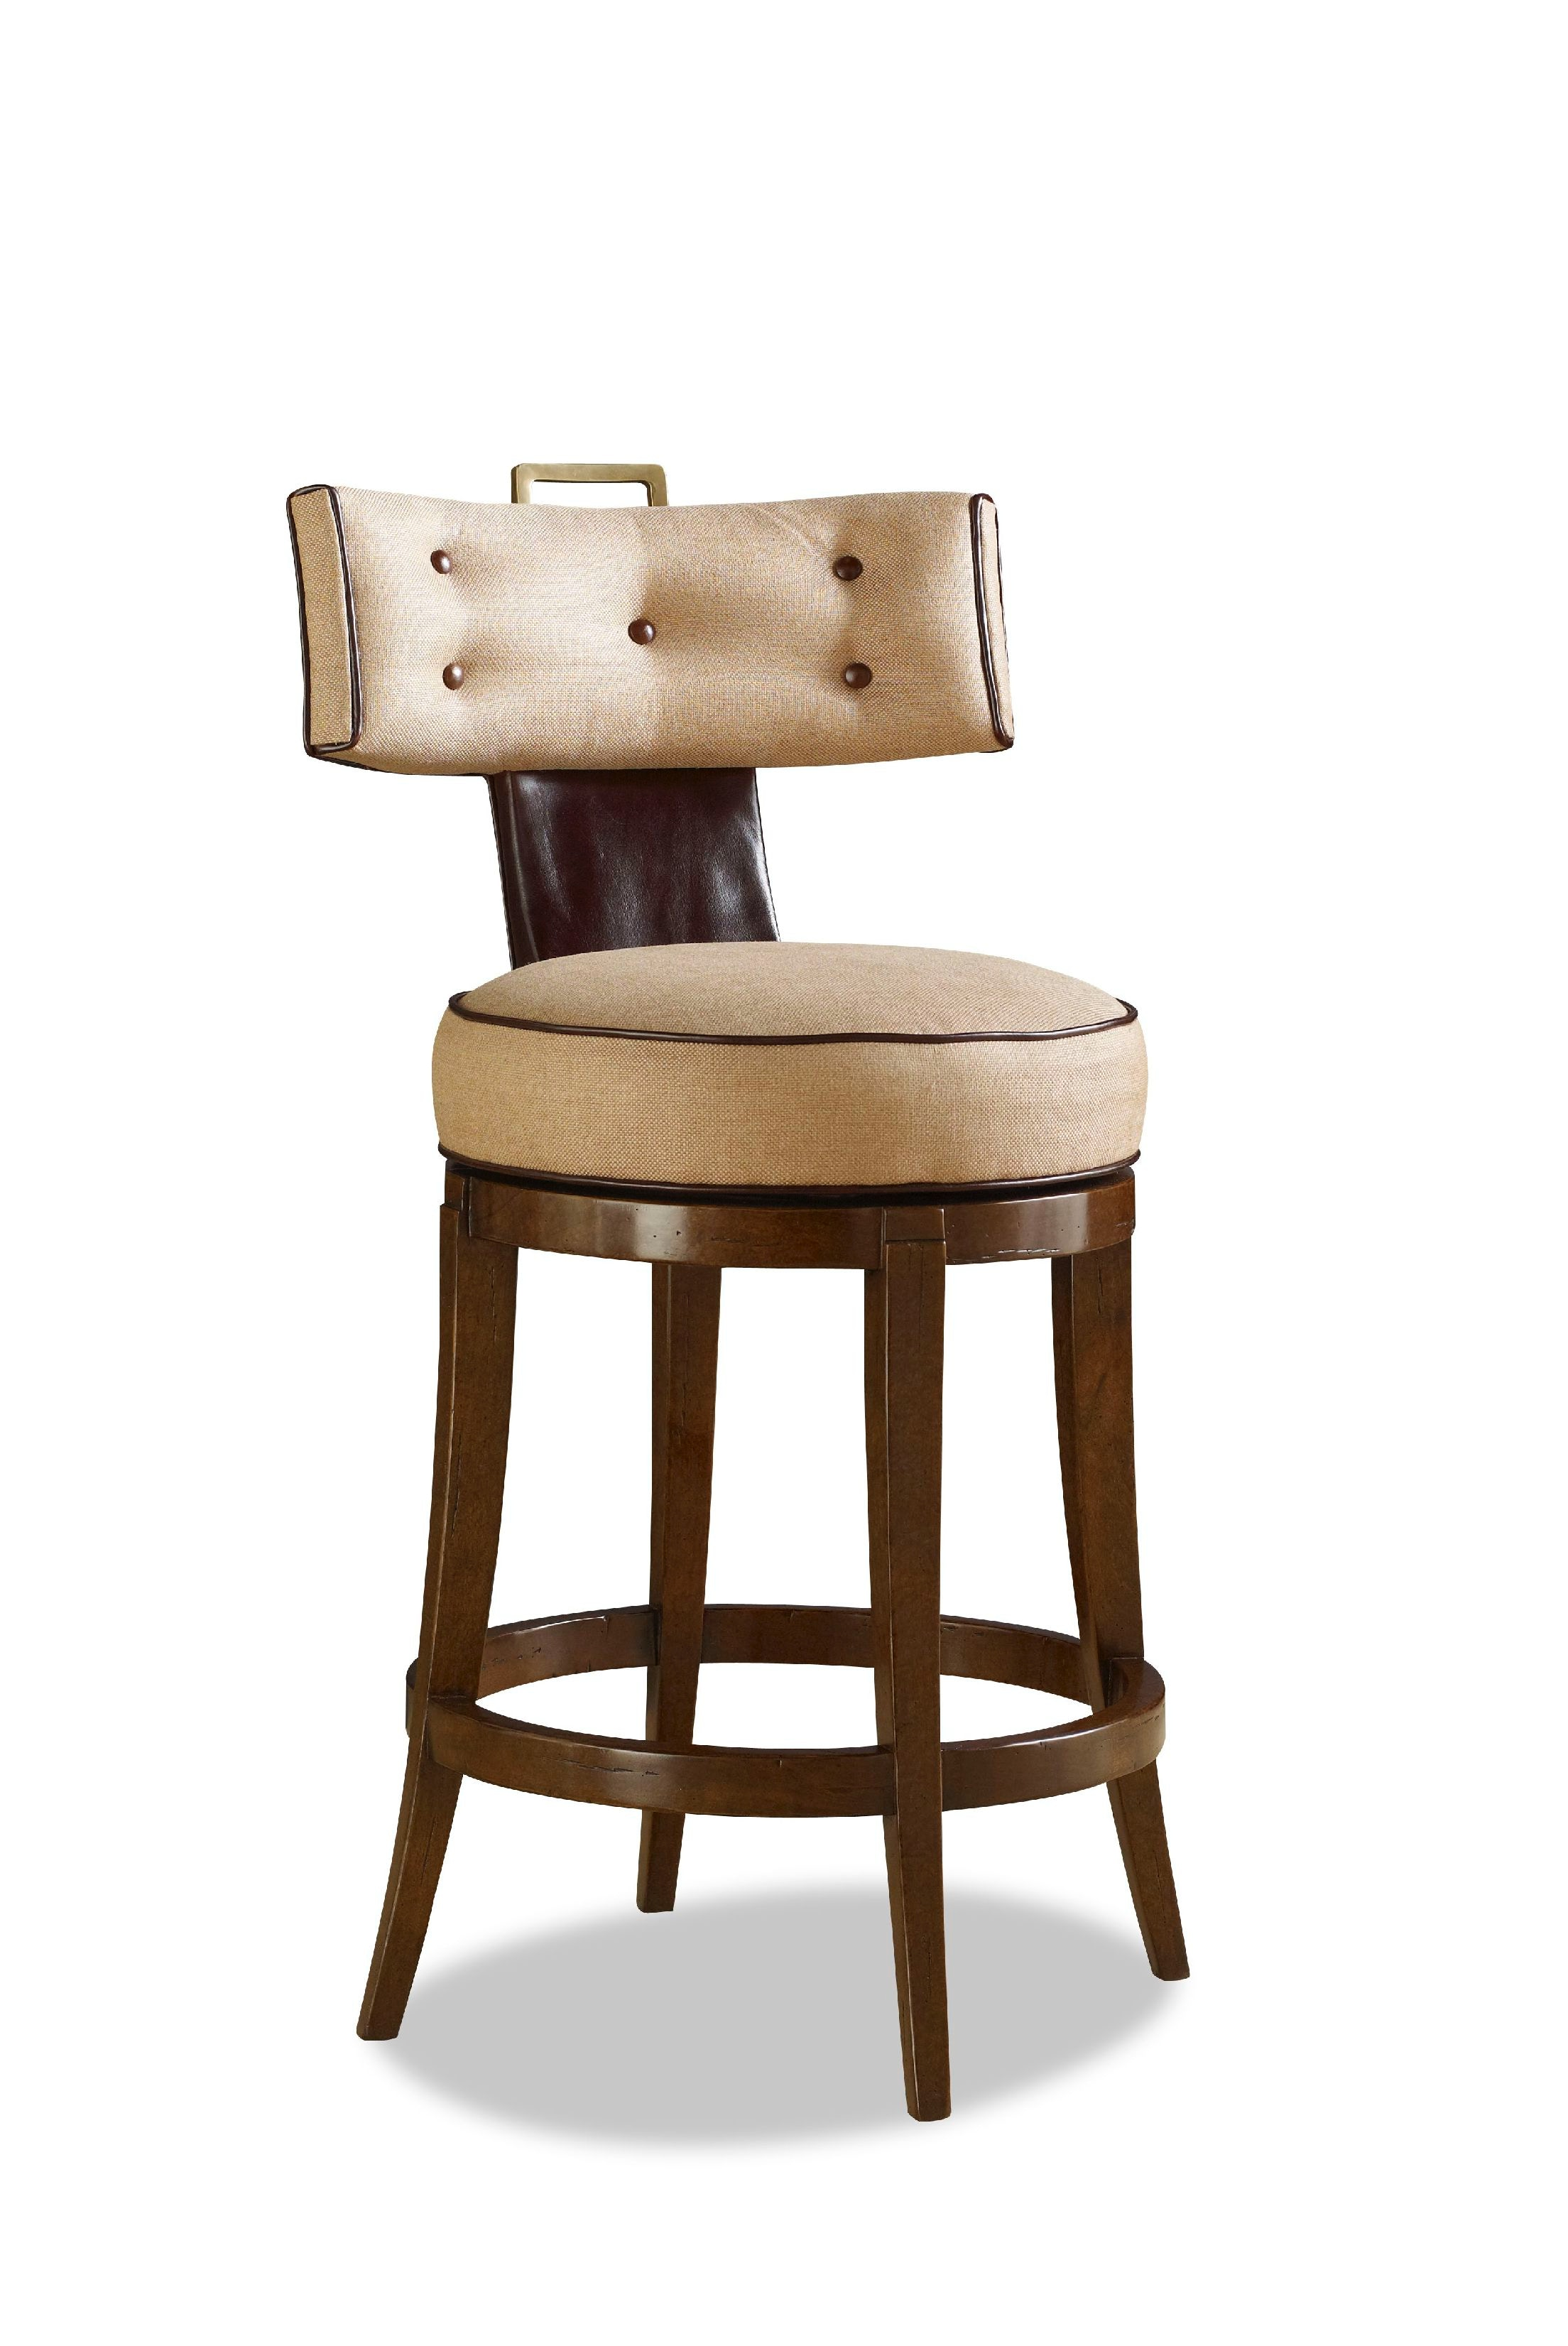 Chaddock Bar and Game Room Queensdale Swivel Barstool DE1943 : Hickory Furniture Mart : Hickory, NC